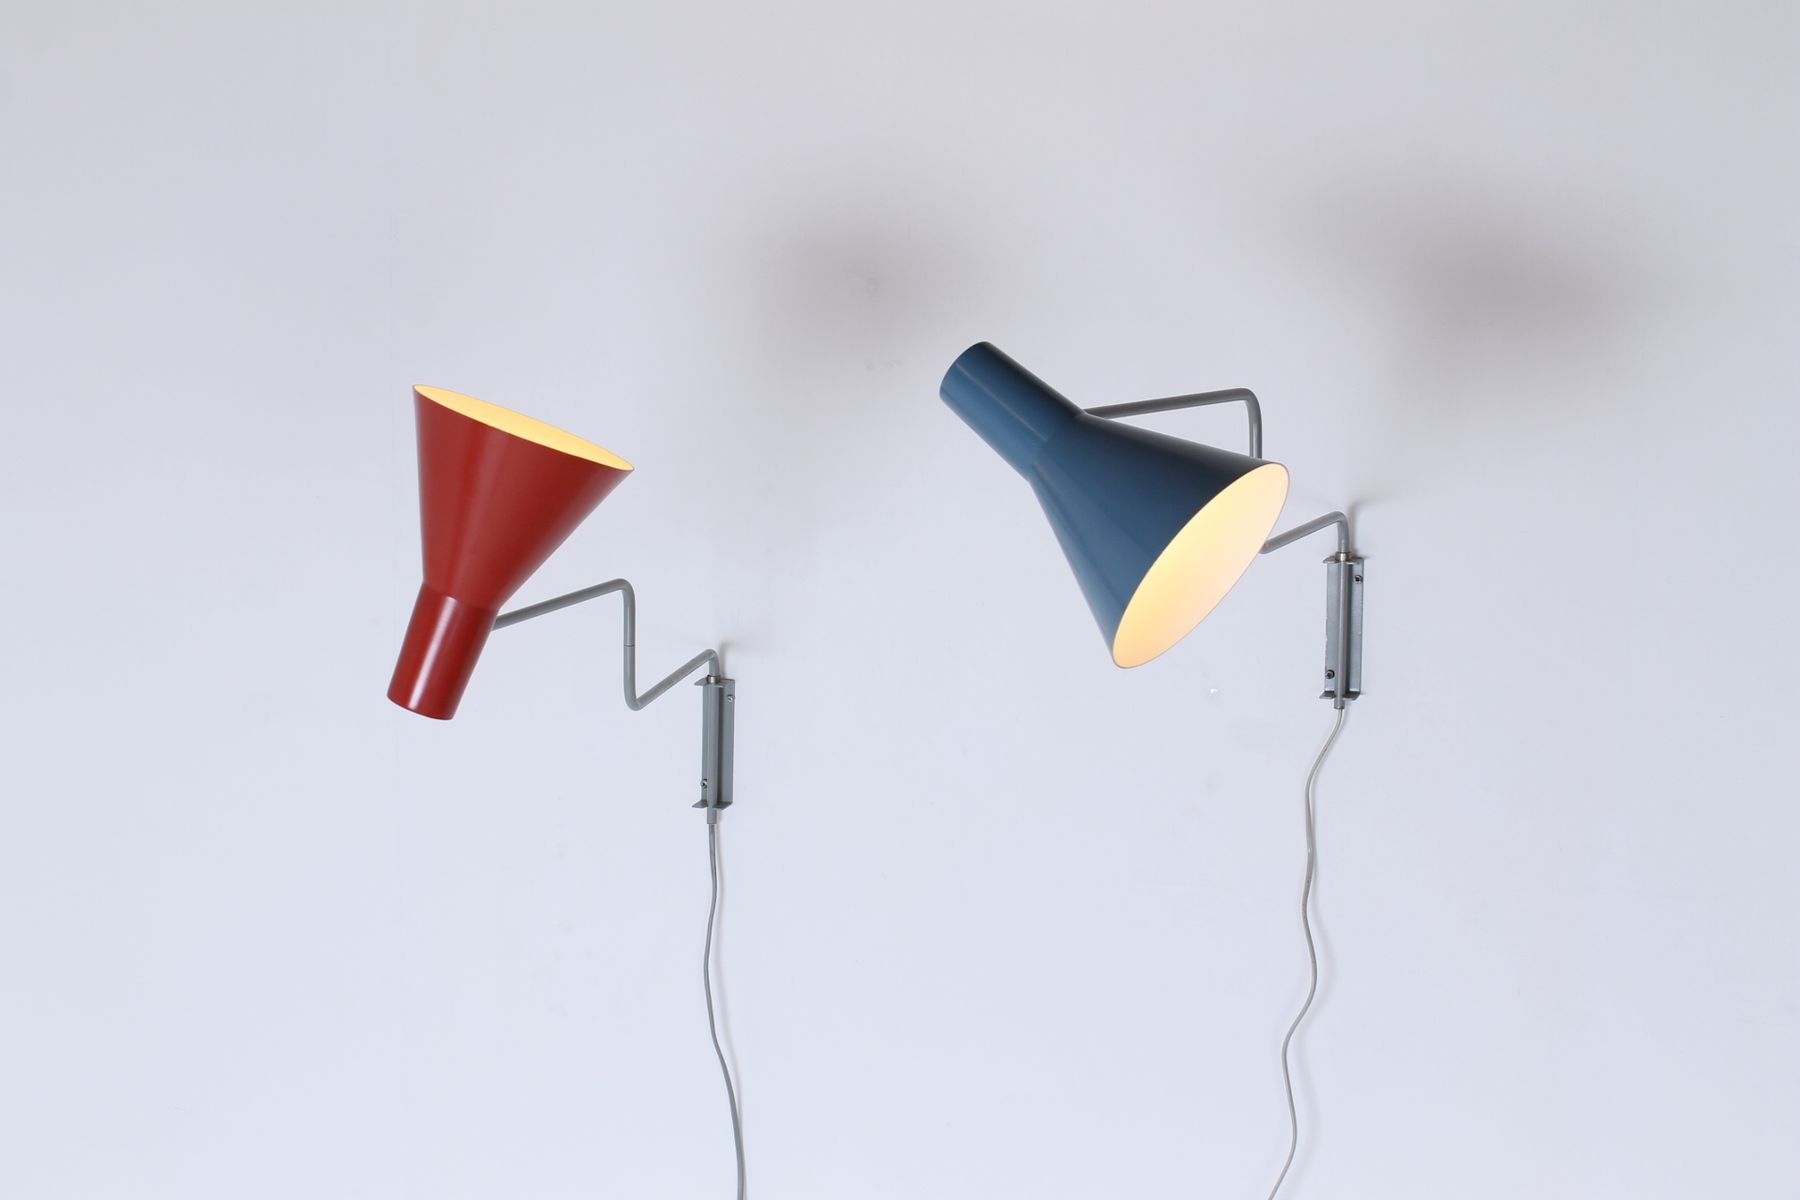 Vintage Elbow Articulated Wall Lights by Hoogervorst for Anvia, Set of 2 for sale at Pamono